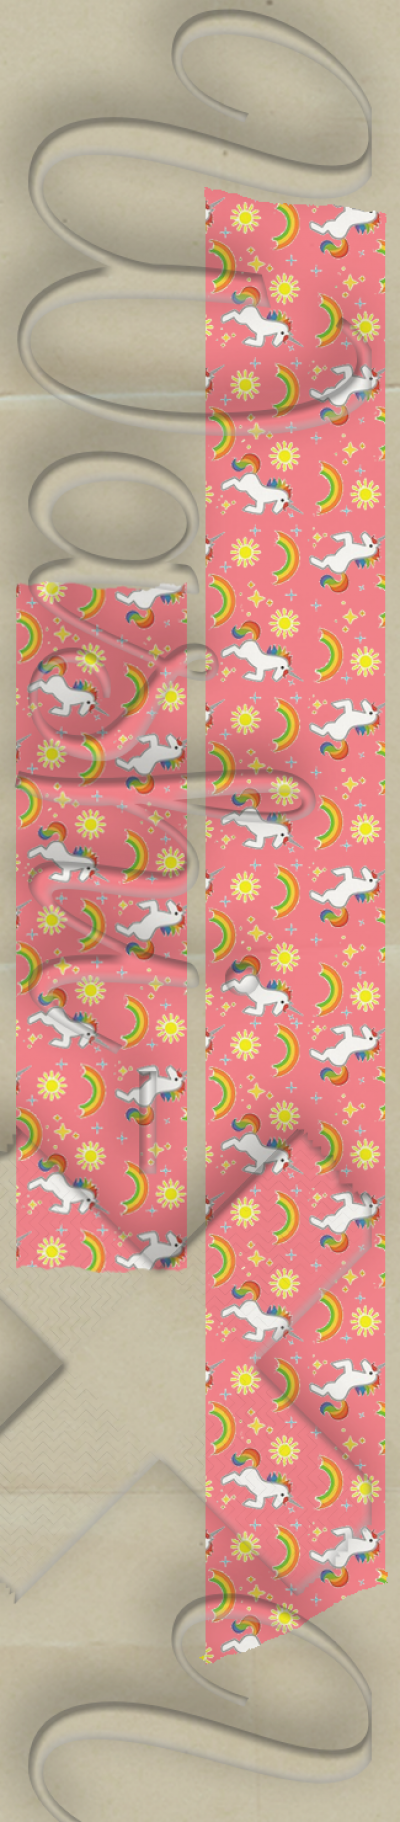 Unicorns patterned washi tape